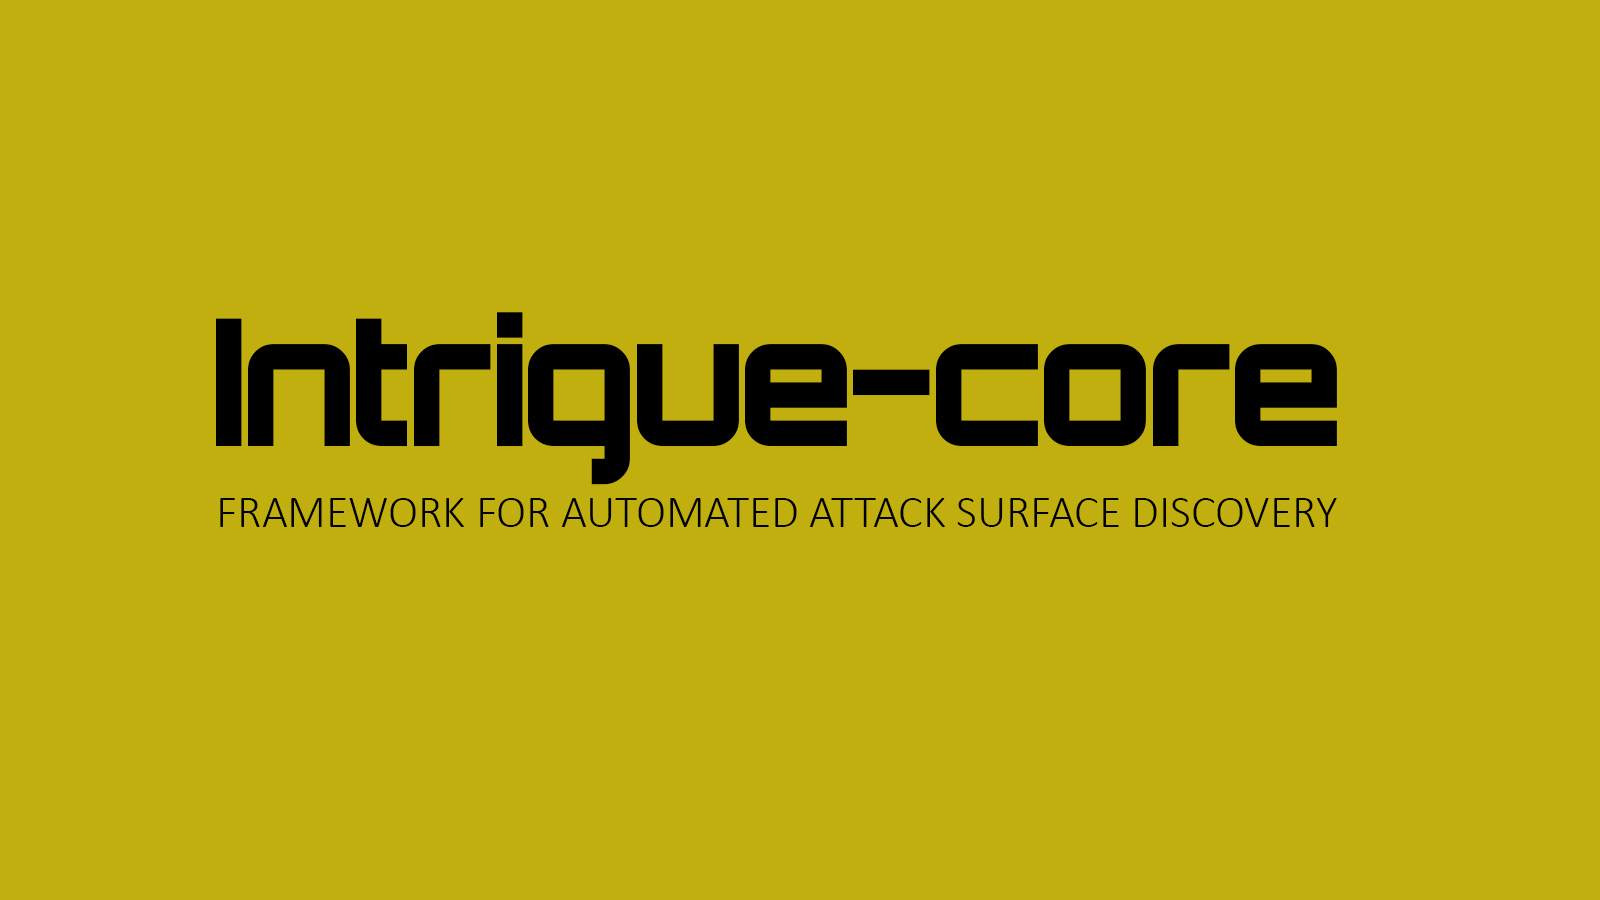 Intrigue-core - Framework for Automated Attack Surface Discovery